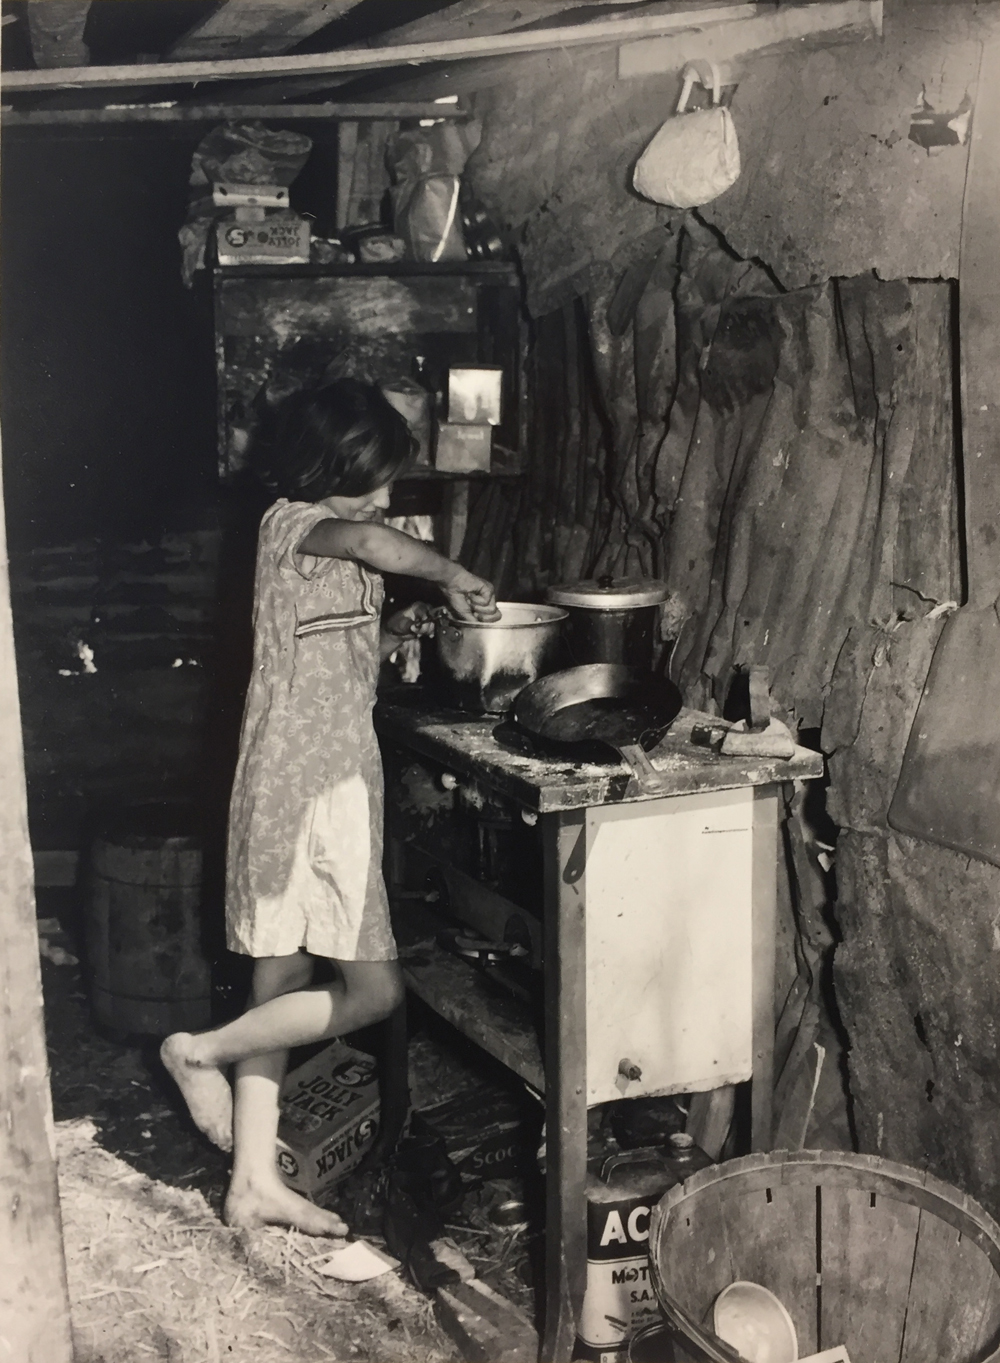 Marion Post Wolcott, Oldest child of migrant packing-house workers preparing supper. Her parents work during the day and sometimes until 2am. The children are left alone, Near Homestead, FL, 1939, gelatin silver print, 7 x 5 inches, price on request